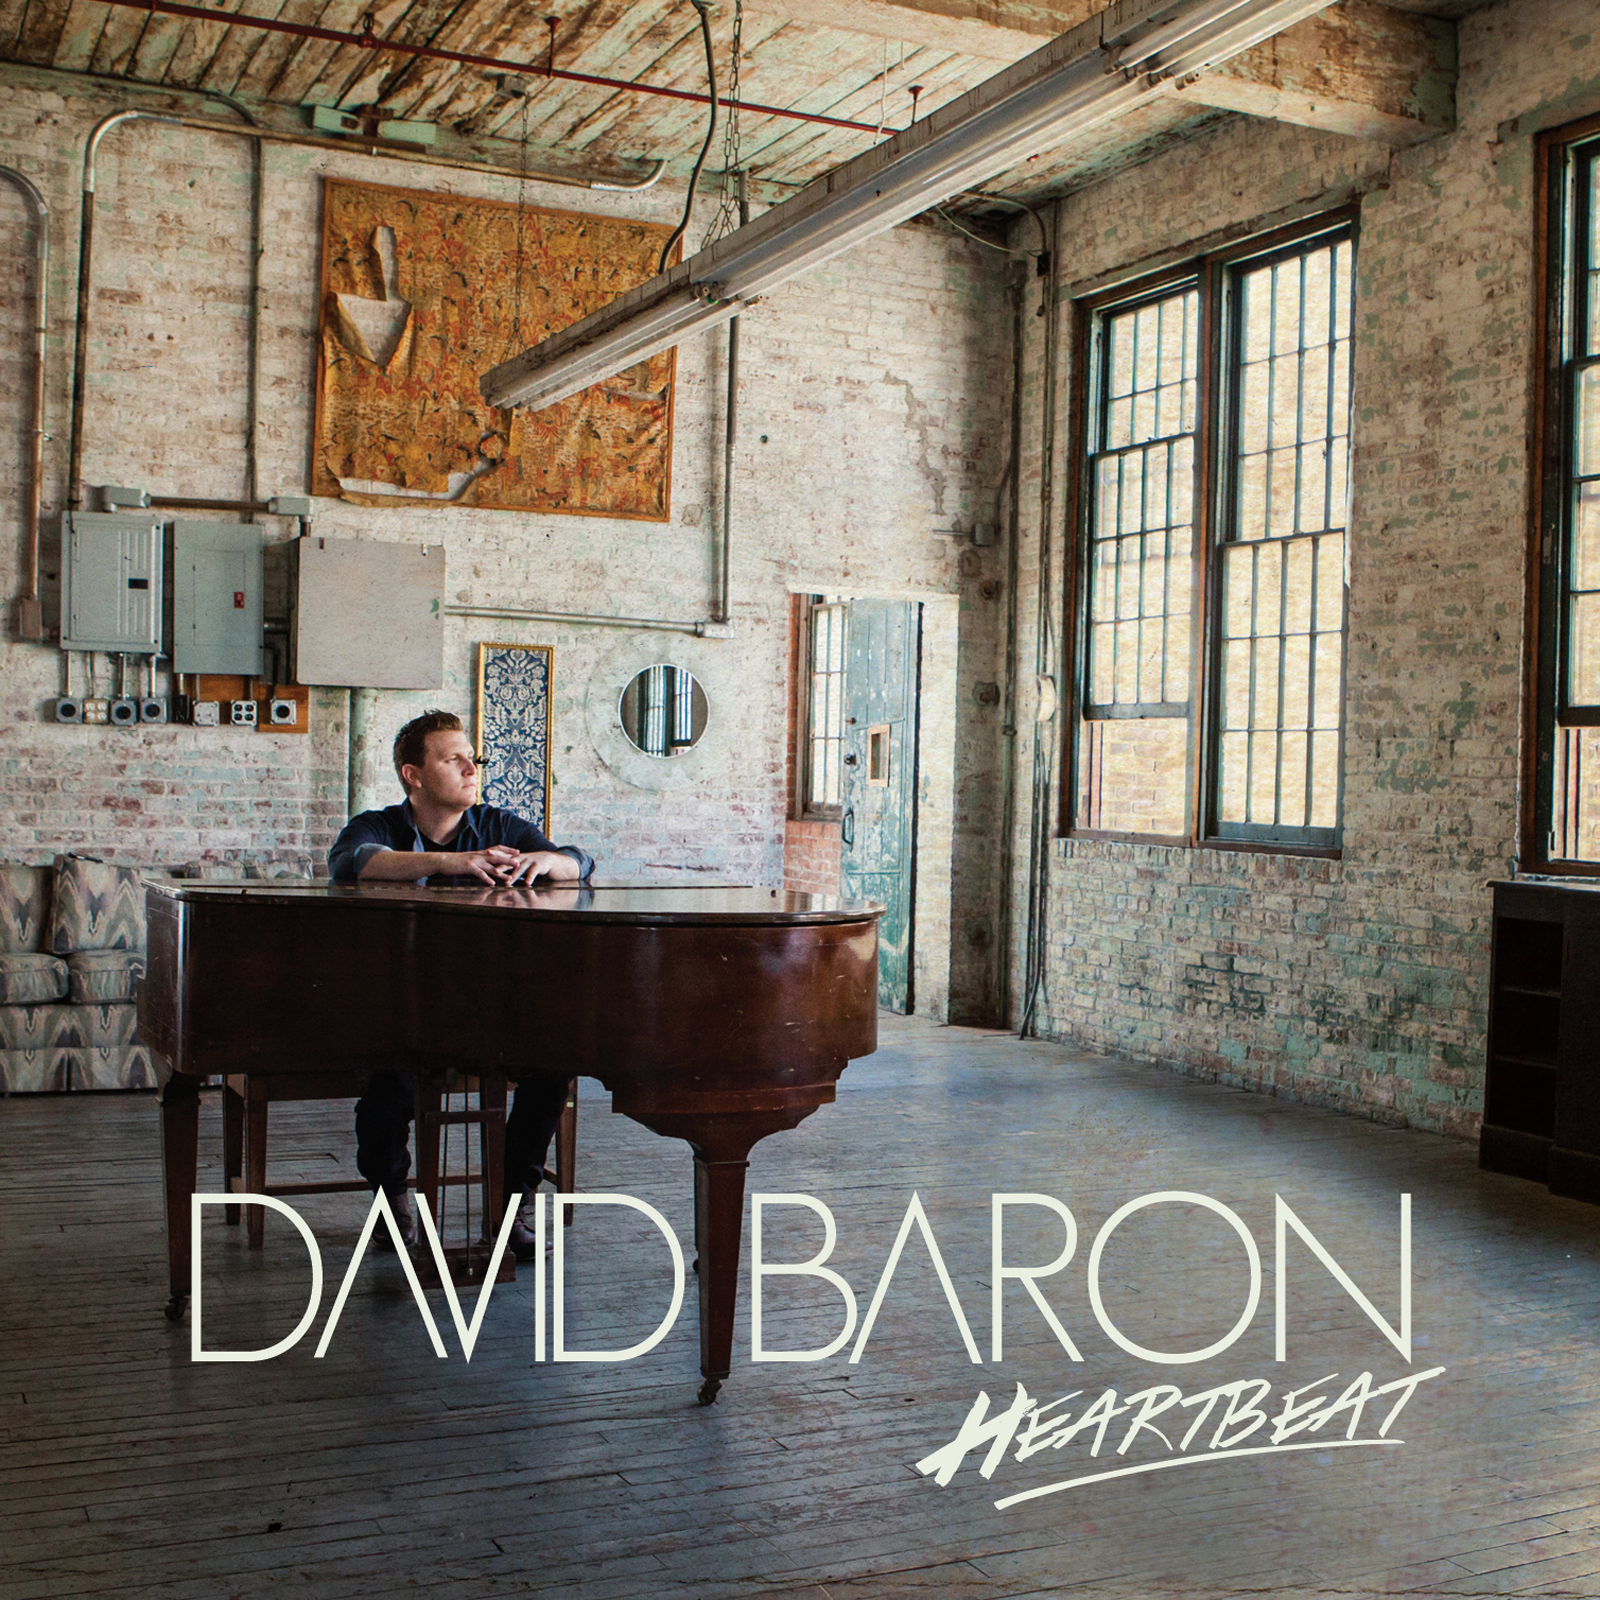 David Baron - Heartbeat (2014)